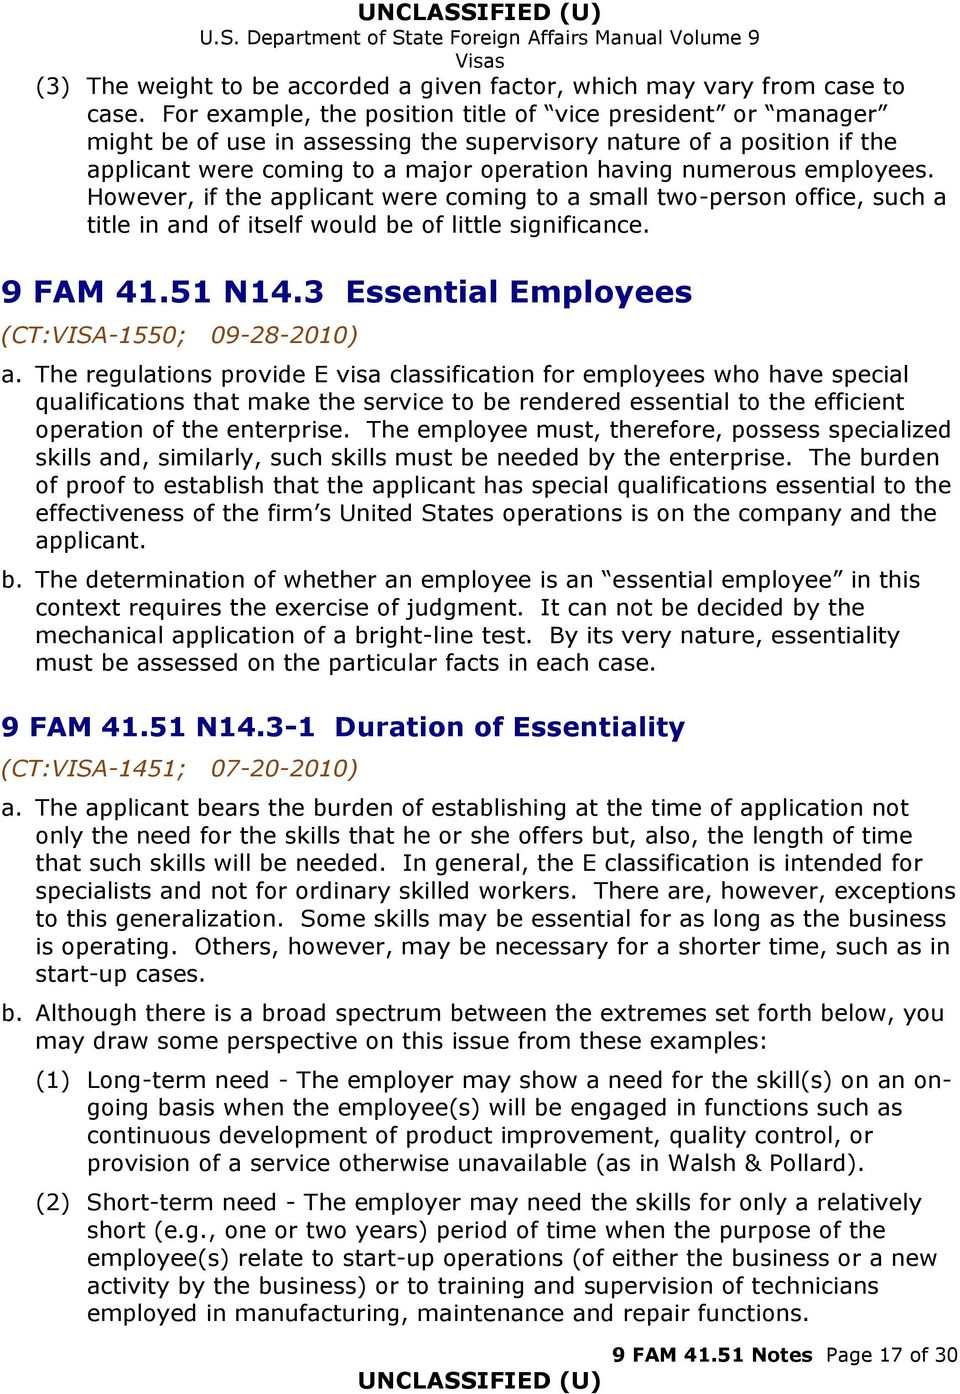 employees. However, if the applicant were coming to a small two-person office, such a title in and of itself would be of little significance. 9 FAM 41.51 N14.